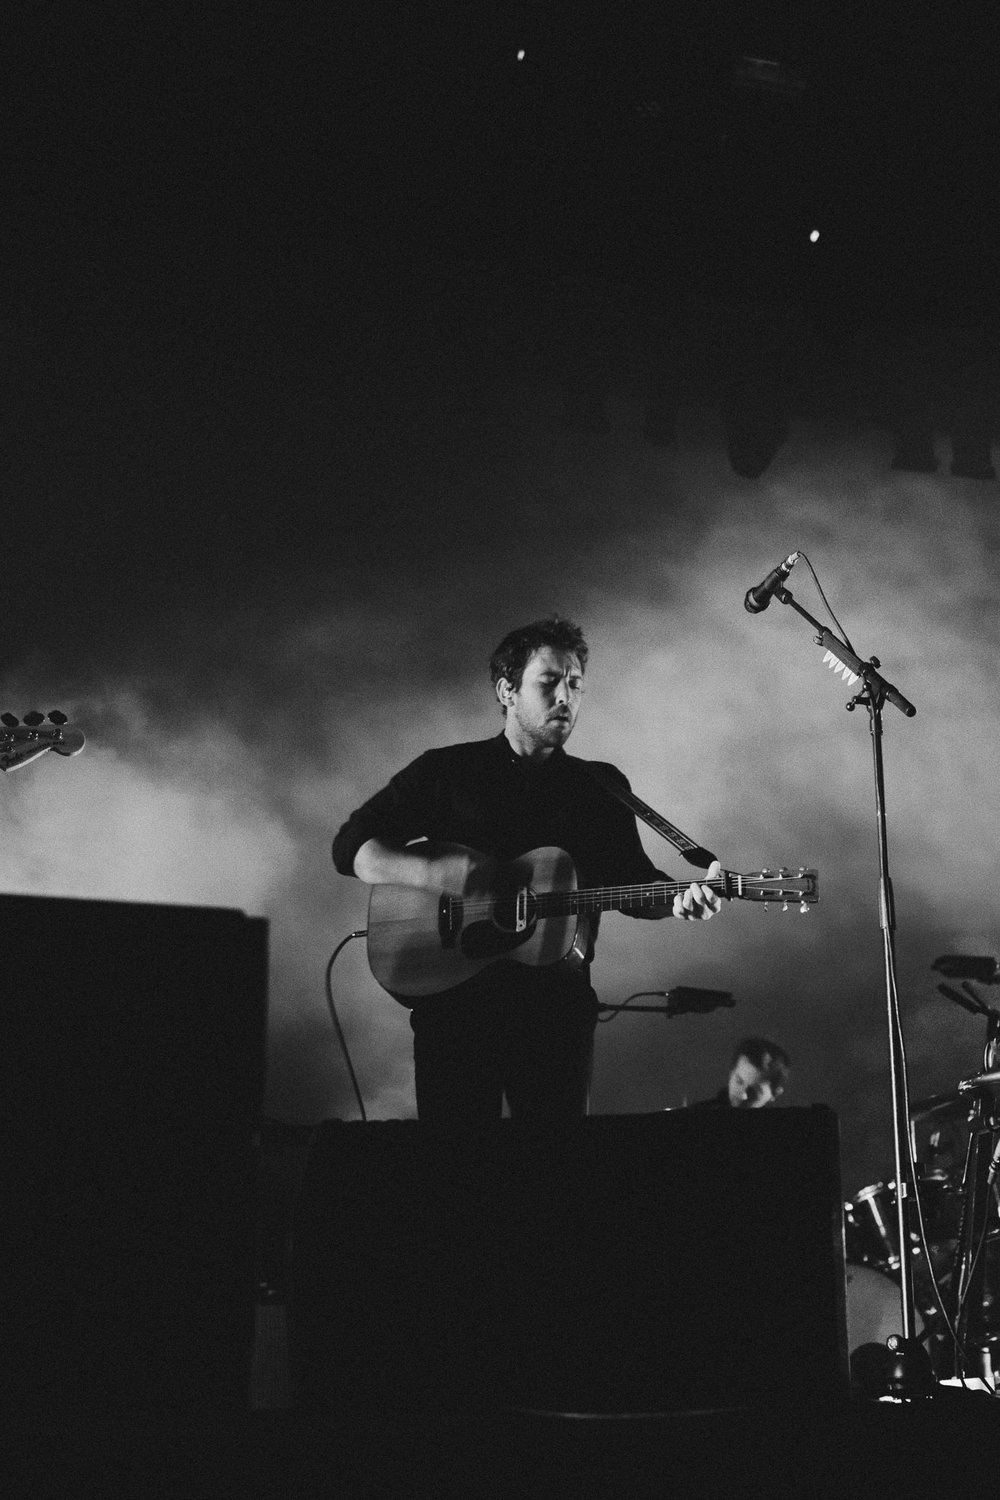 Fleet Foxes - Britton Strickland (9 of 16).jpg